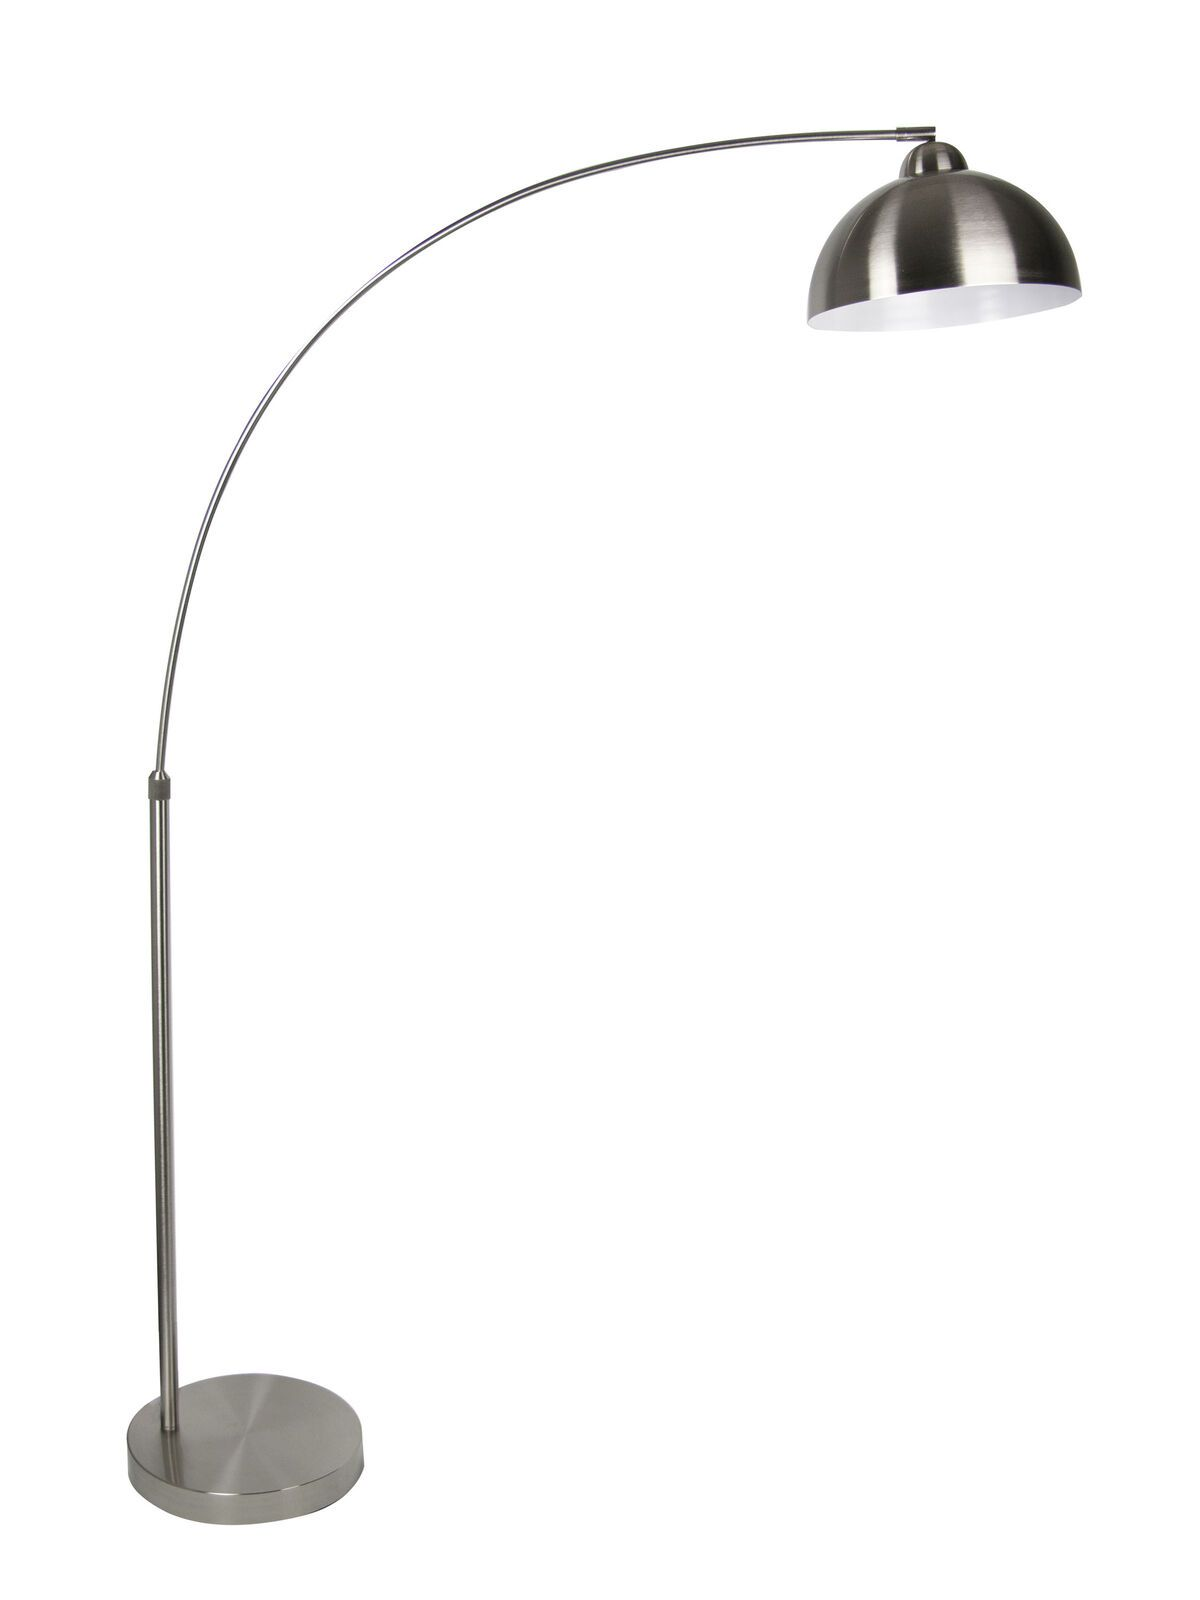 Details About Grandview Gallery 68 5 Brushed Nickel Modern Arc